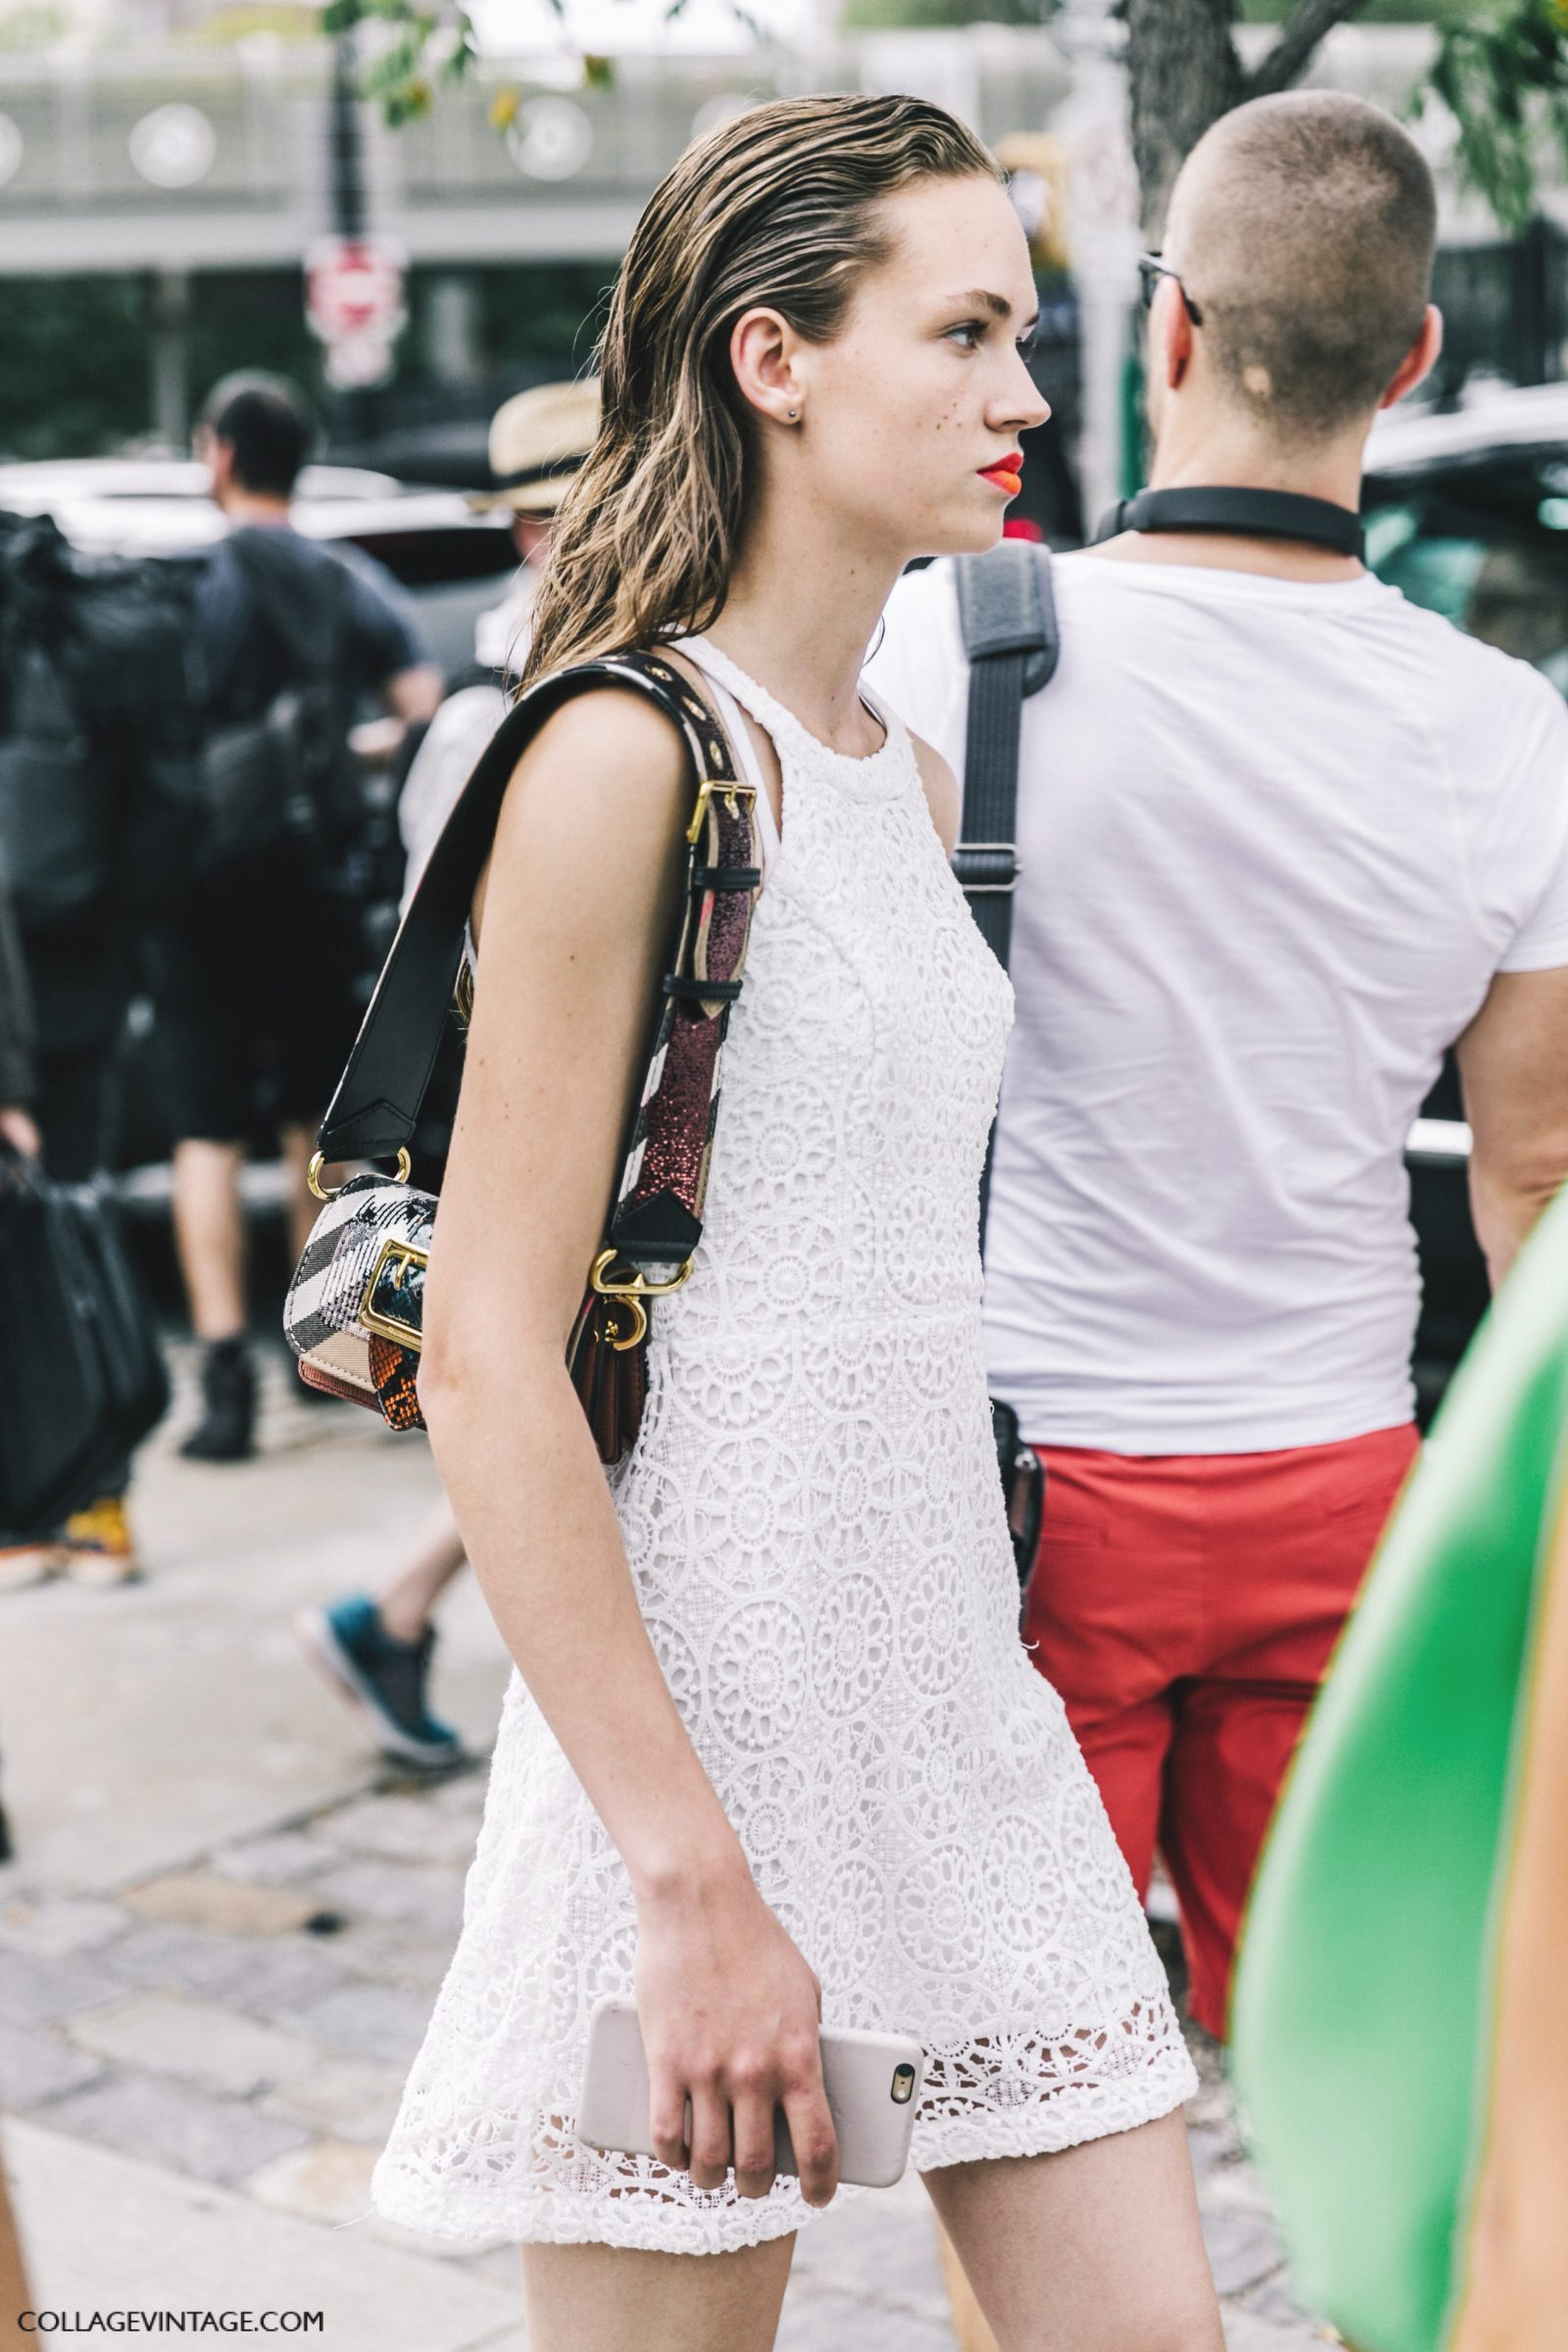 nyfw-new_york_fashion_week_ss17-street_style-outfits-collage_vintage-model-lace_dress-1